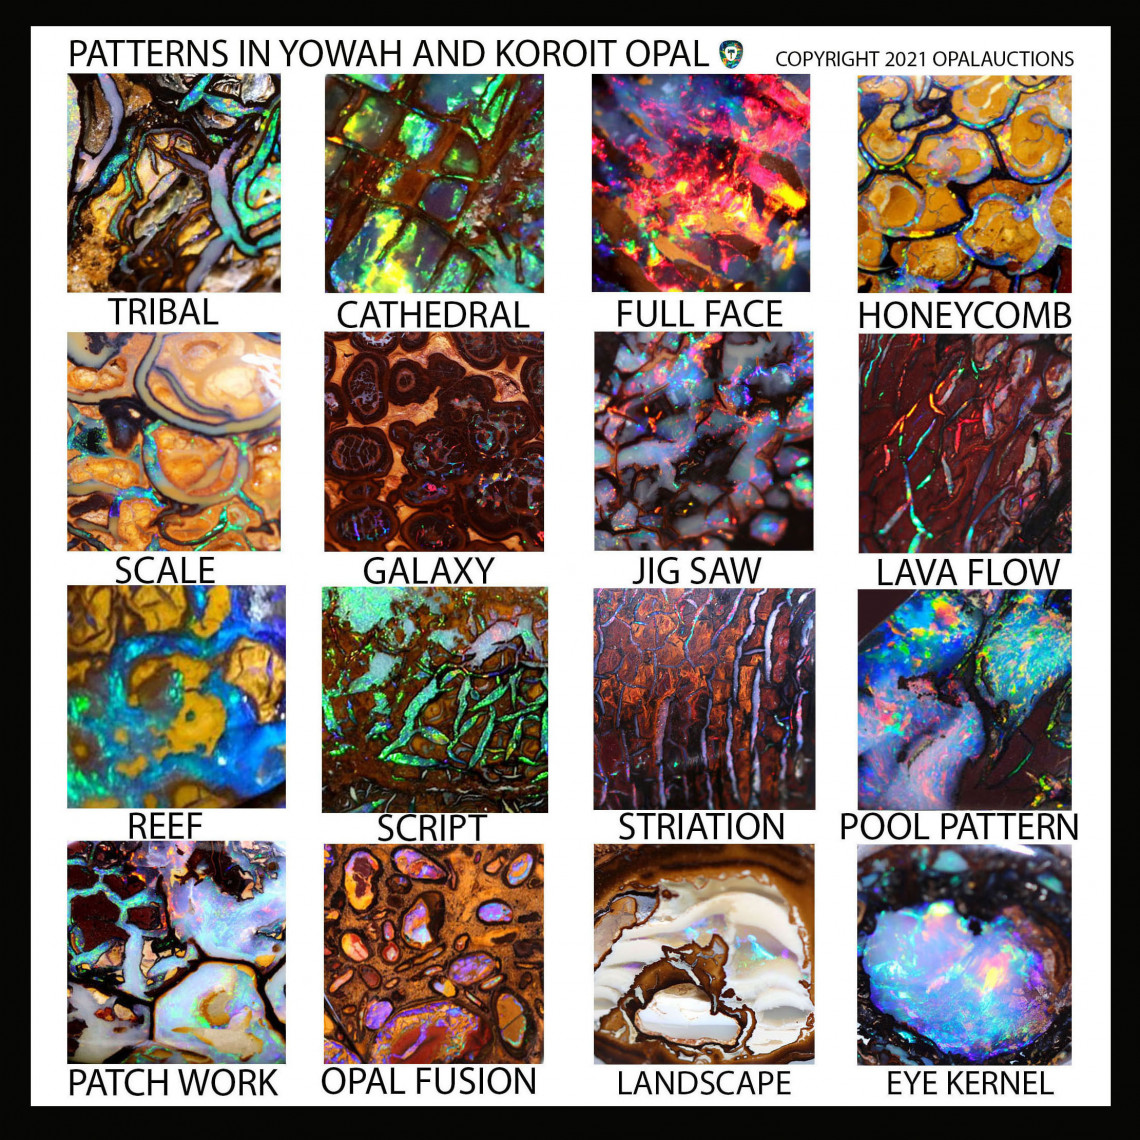 koroit and yowah opal patterns